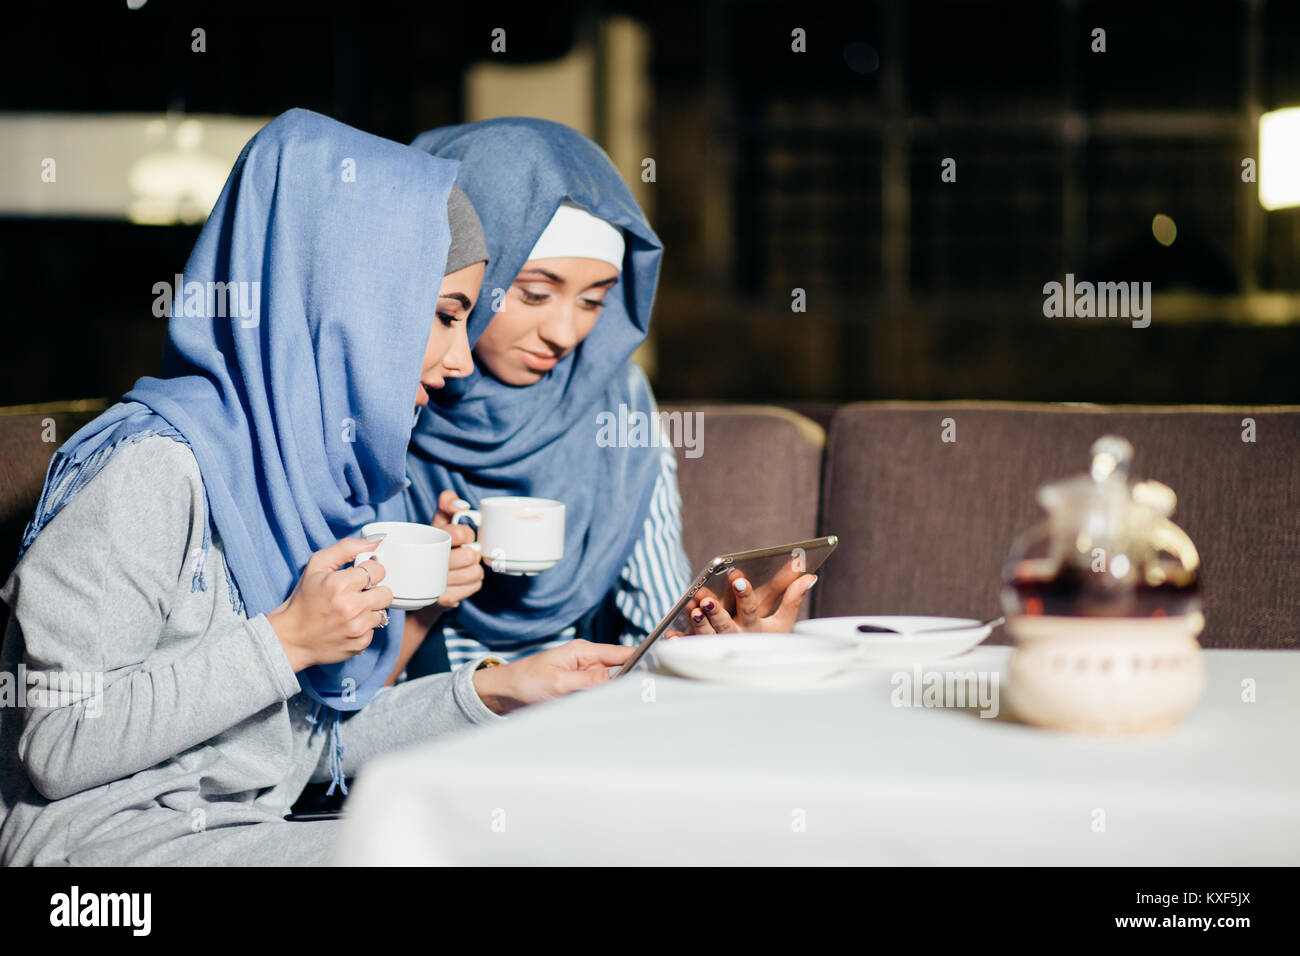 pretty muslim woman use tablet in cafe - Stock Image